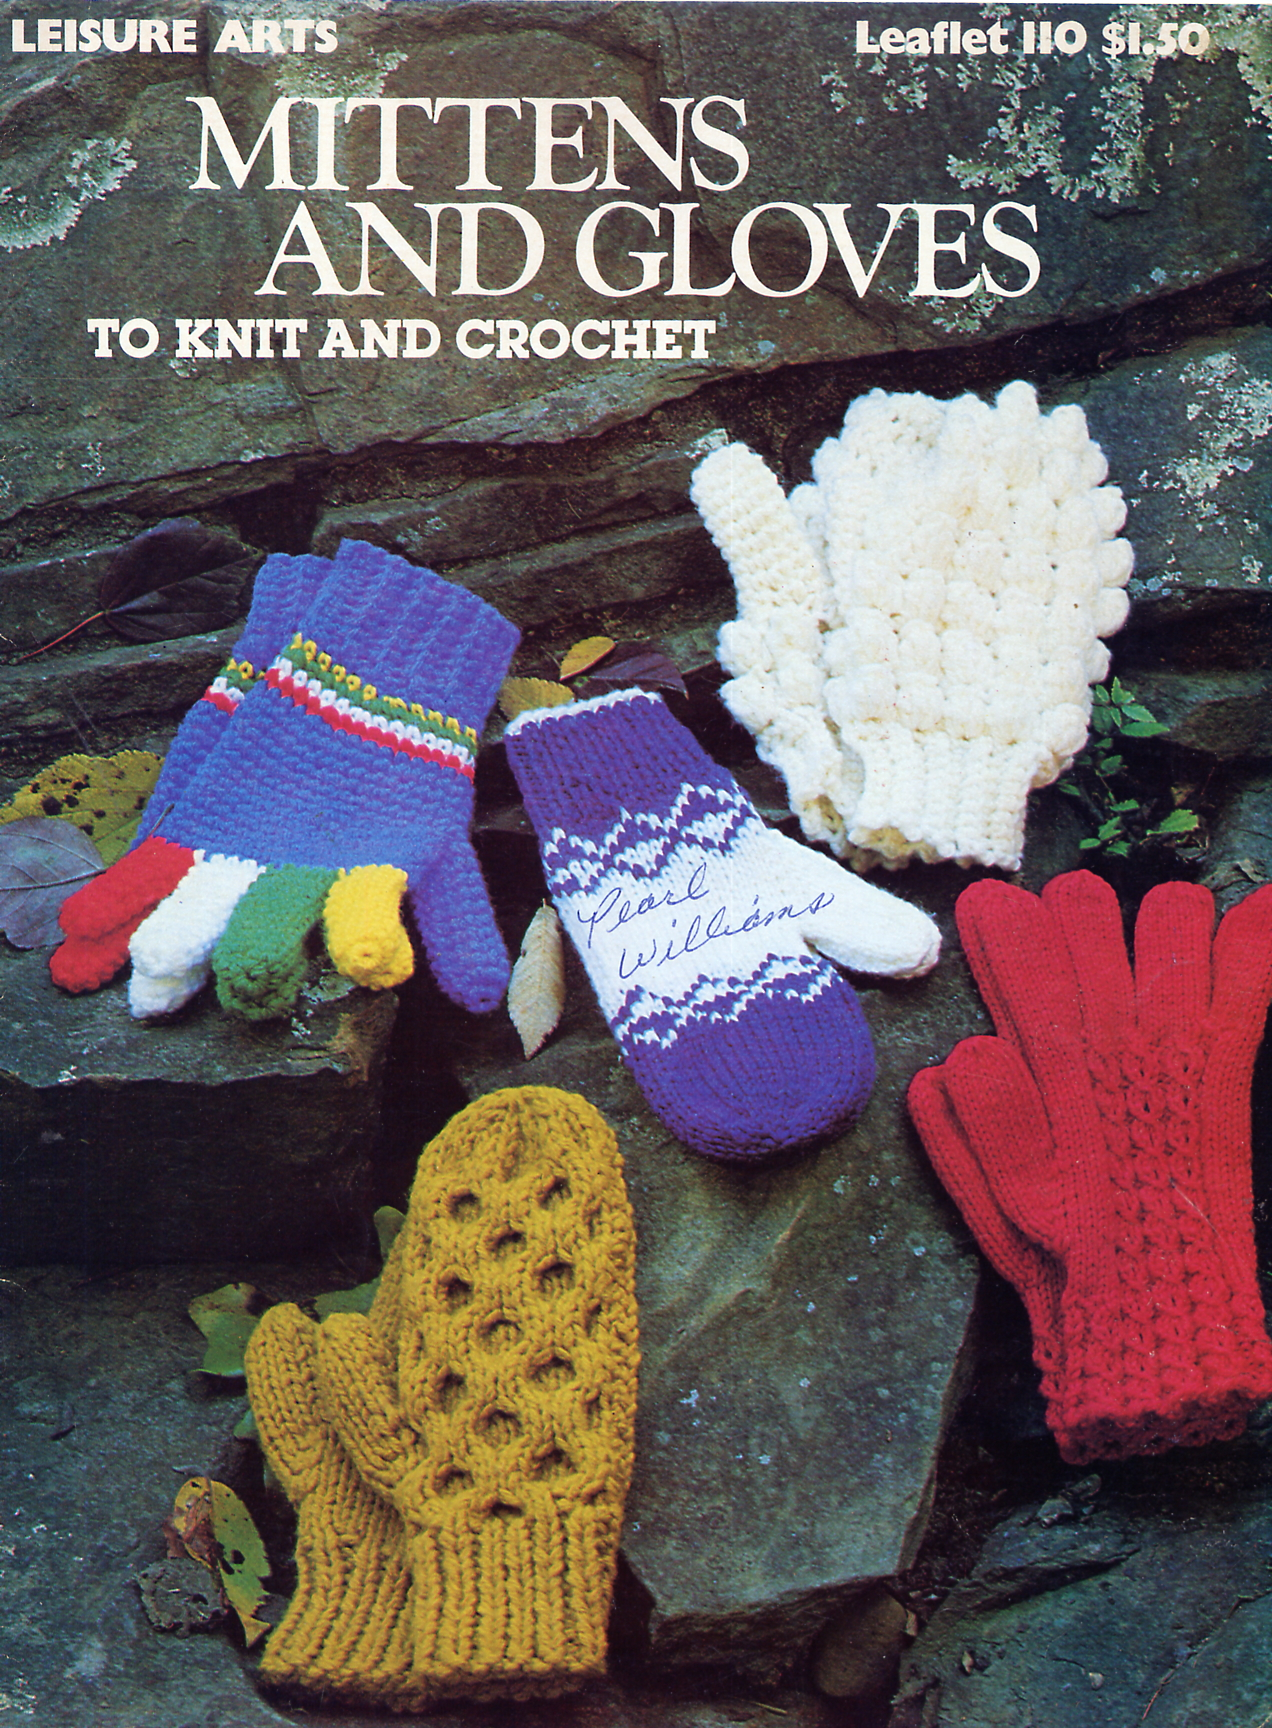 Leisure Arts 110 Mittens and Gloves to Knit and Crochet | Knitting ...